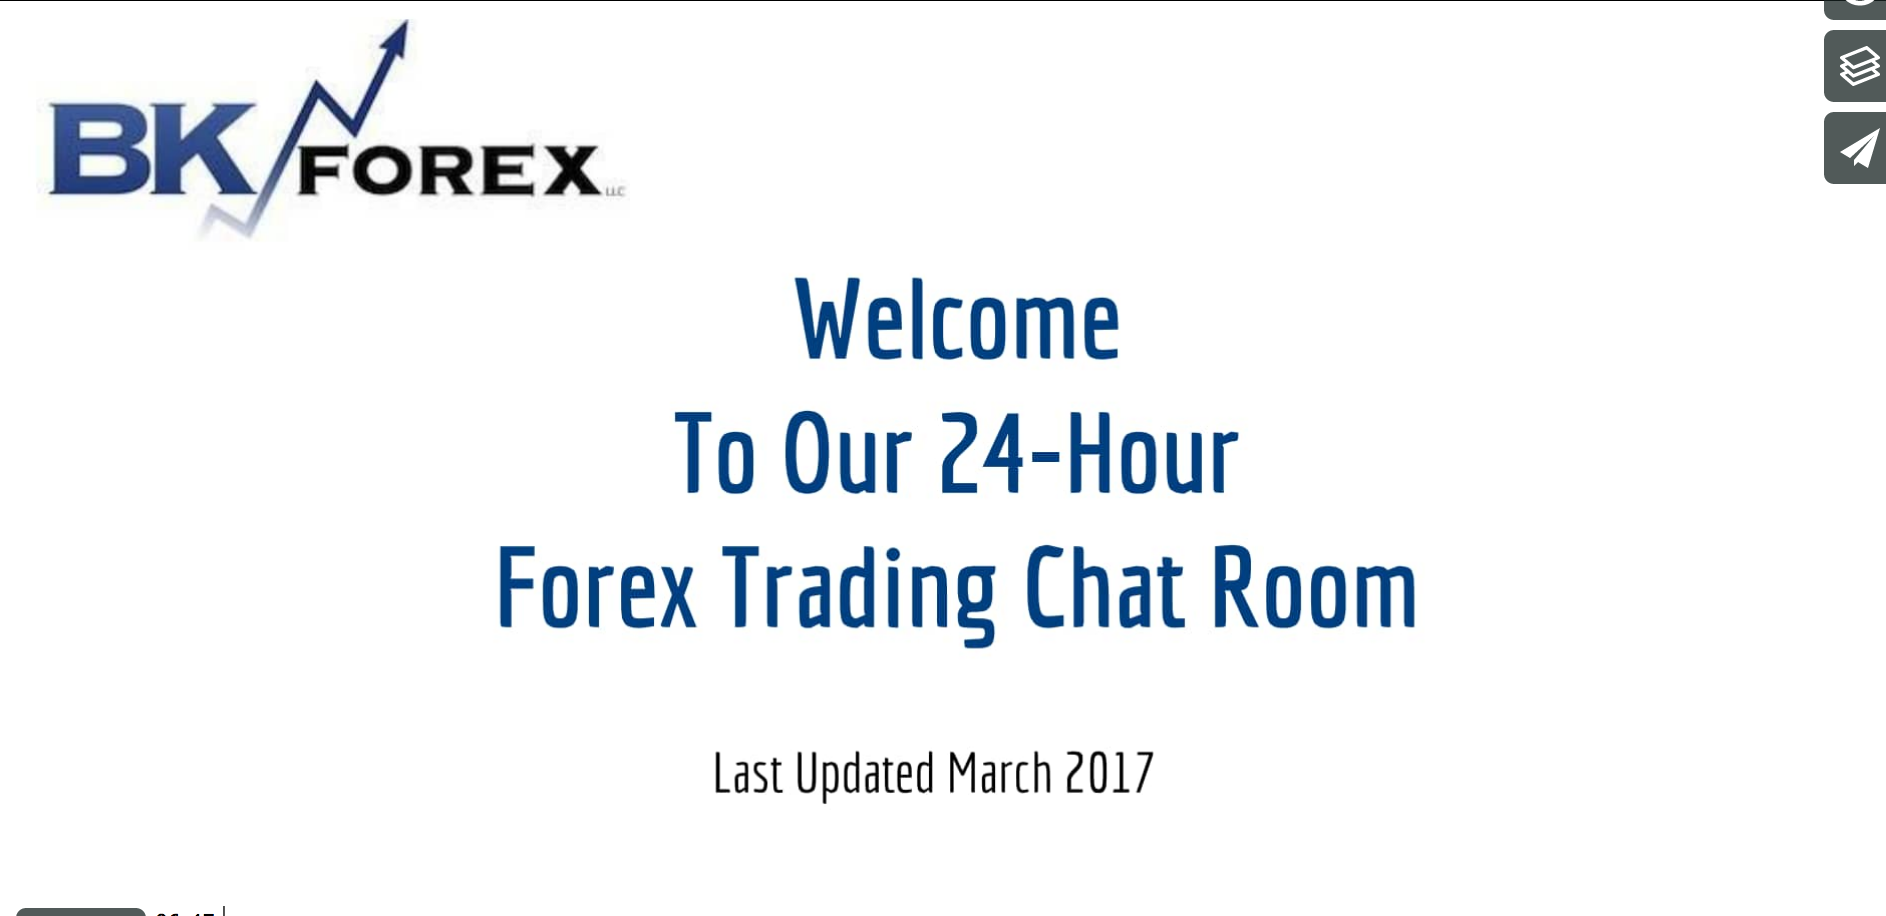 Welcome to BKForex